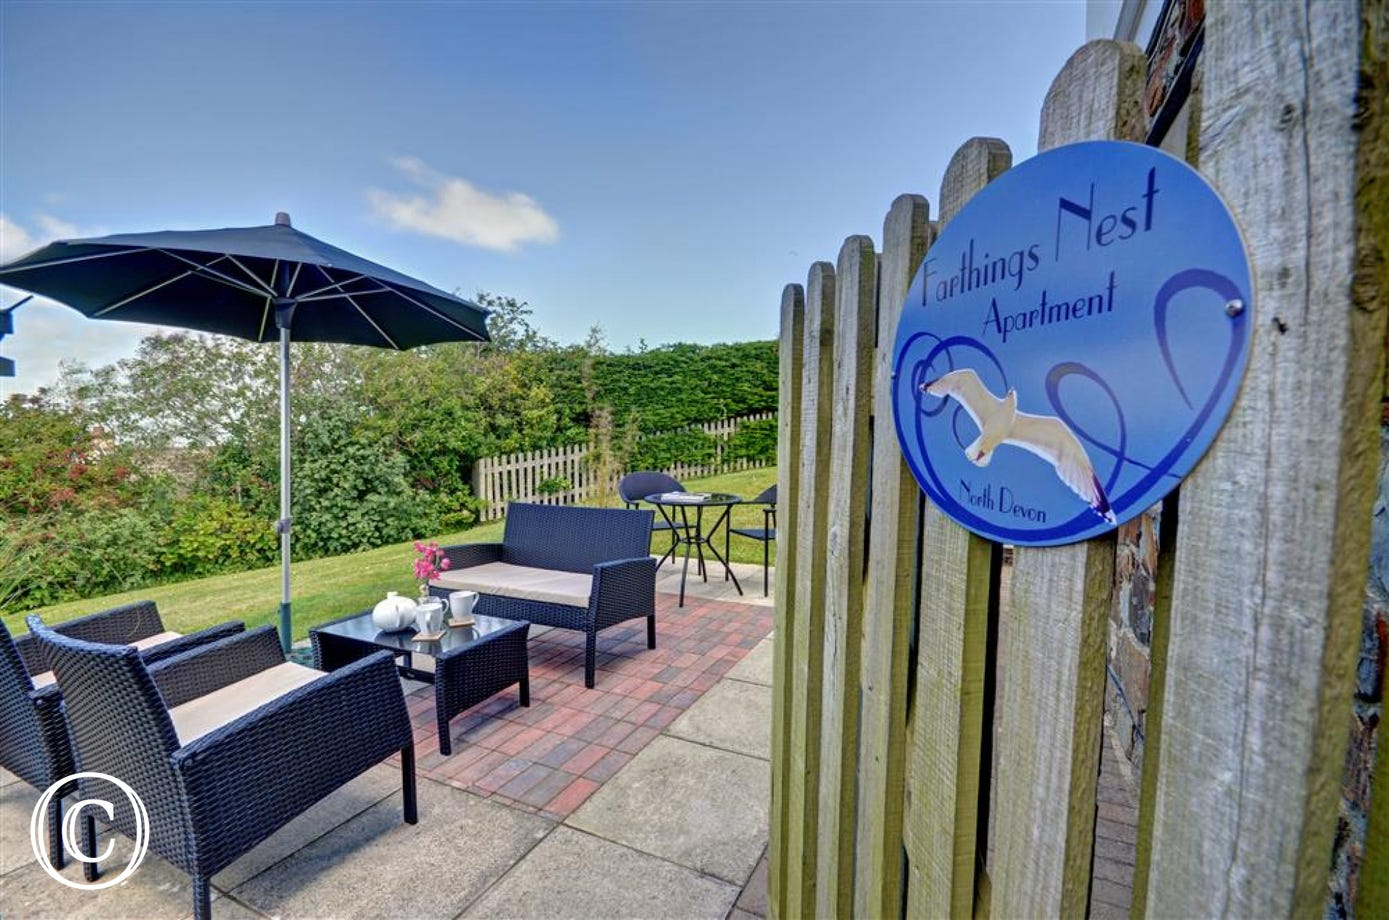 Welcome to Farthings Nest in Ilfracombe!